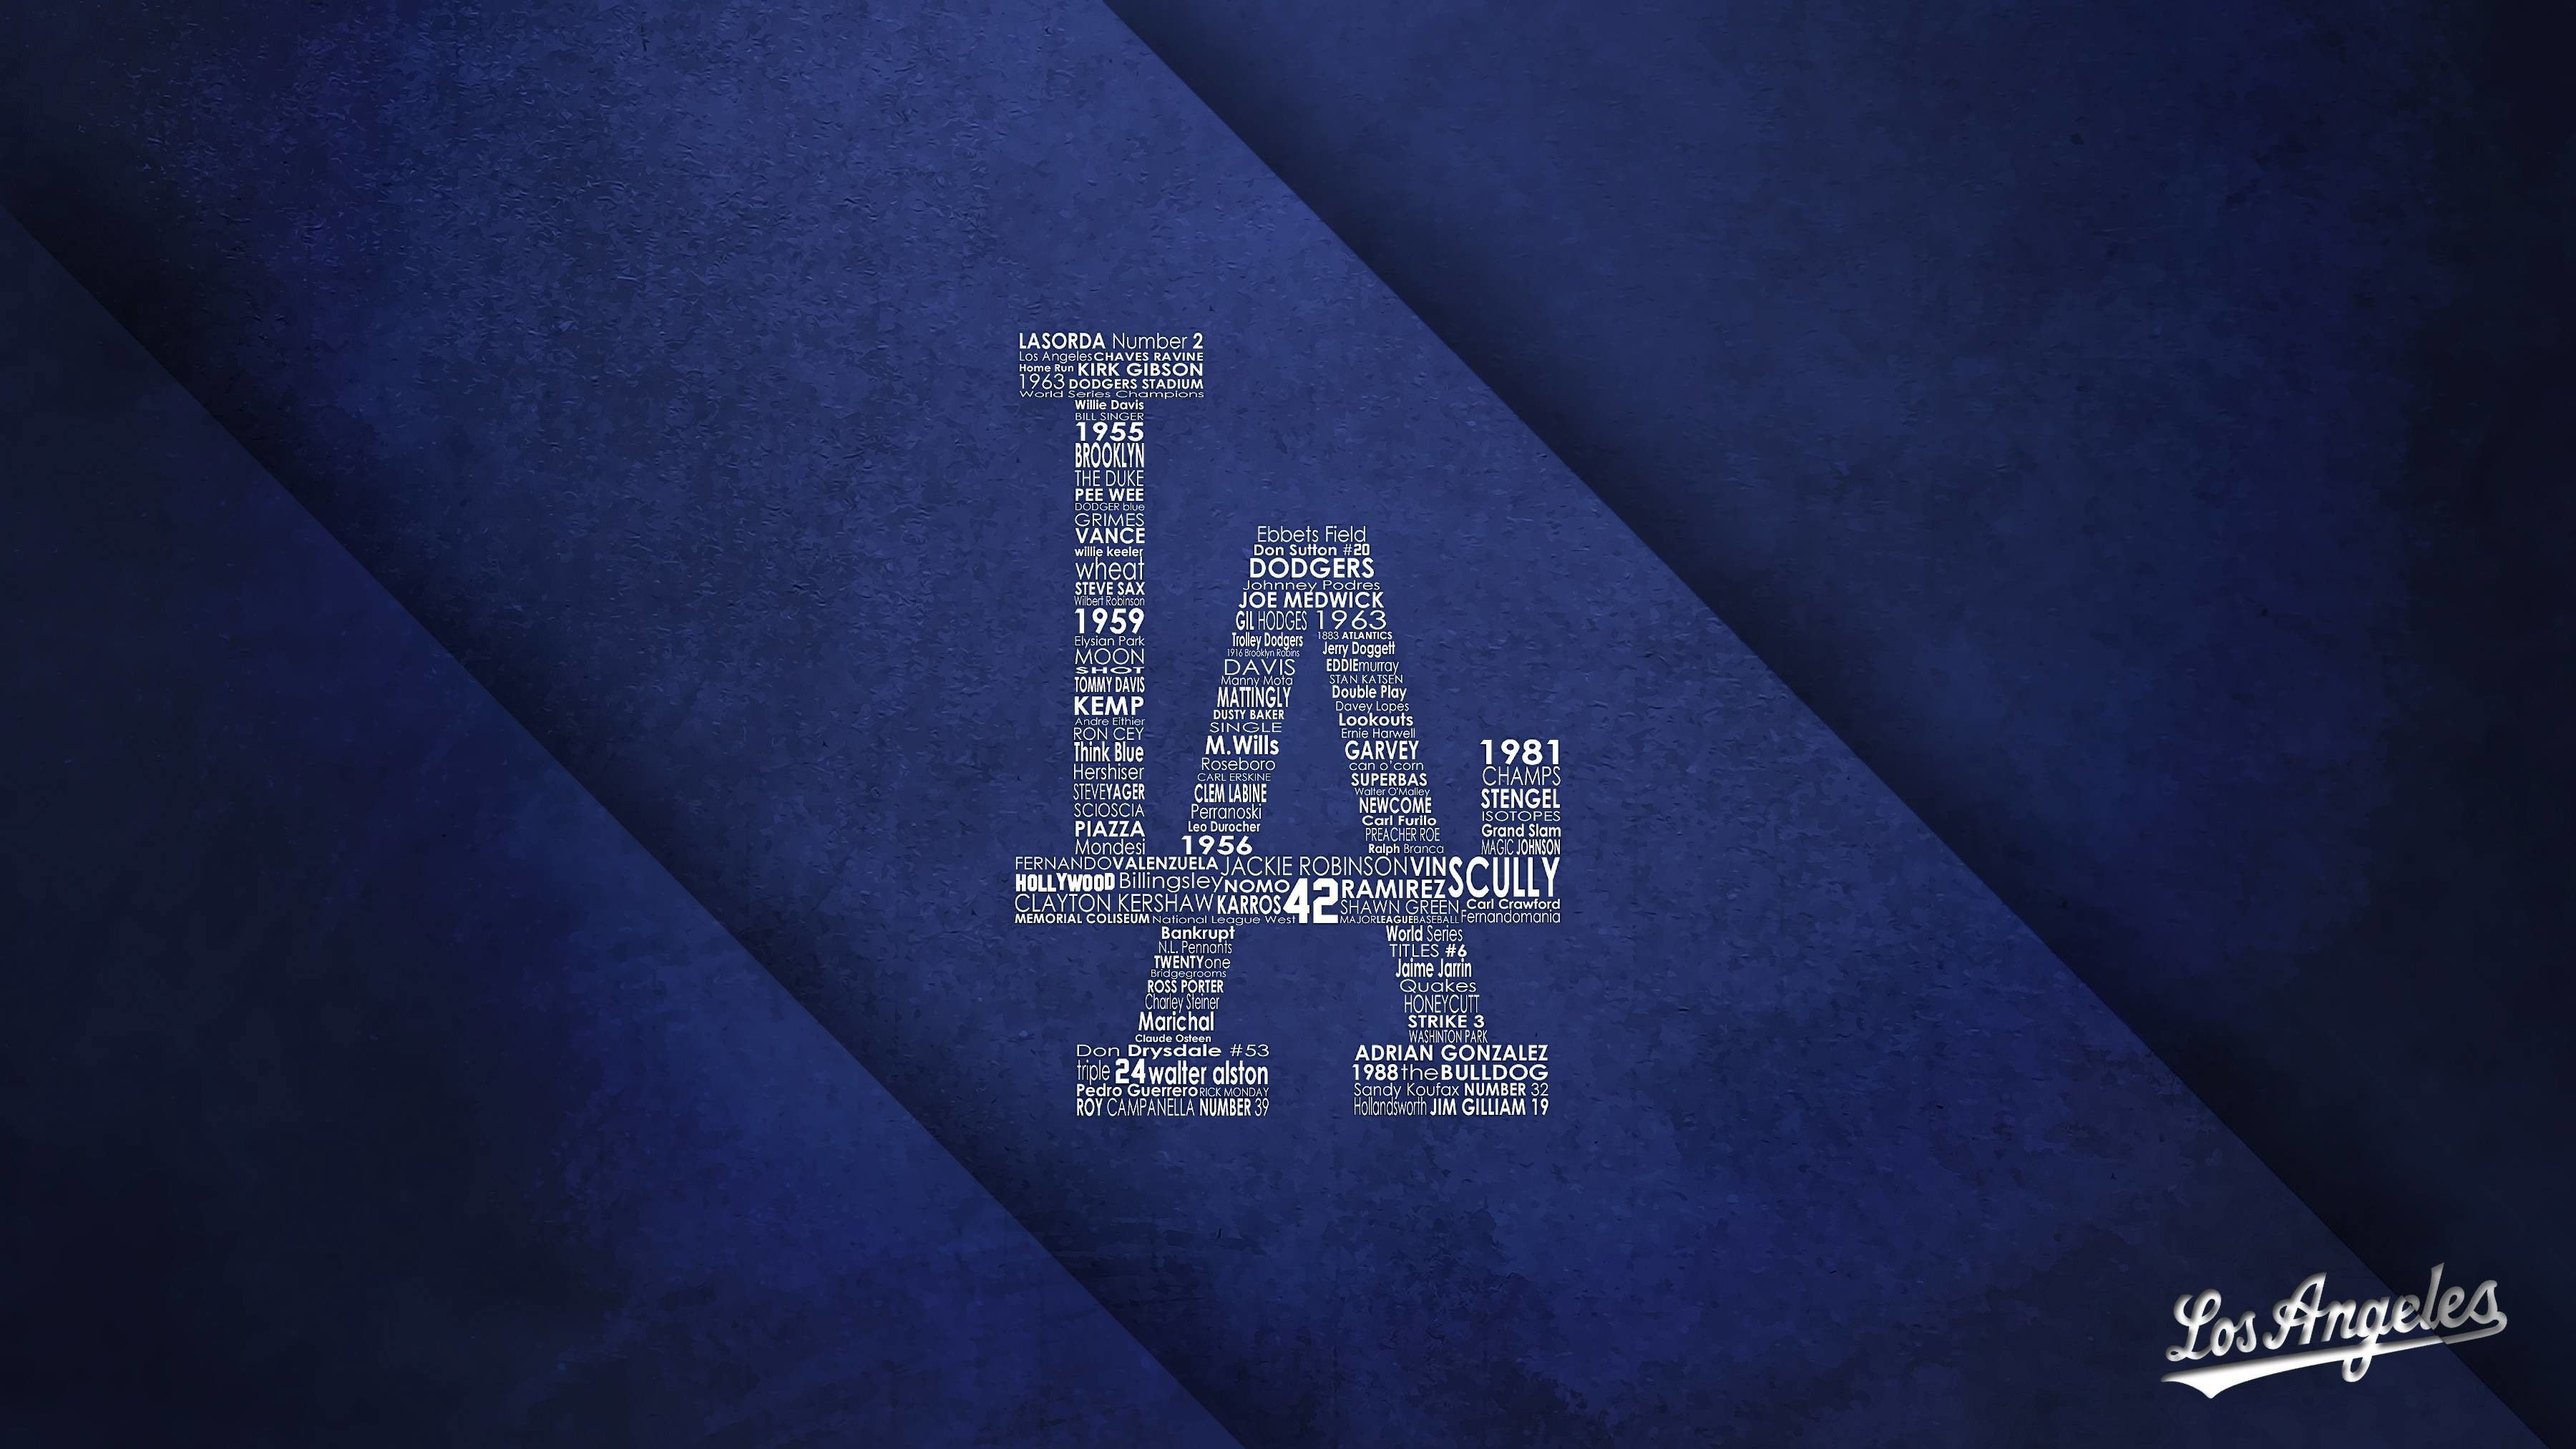 Los Angeles Dodgers Wallpapers Top Free Los Angeles